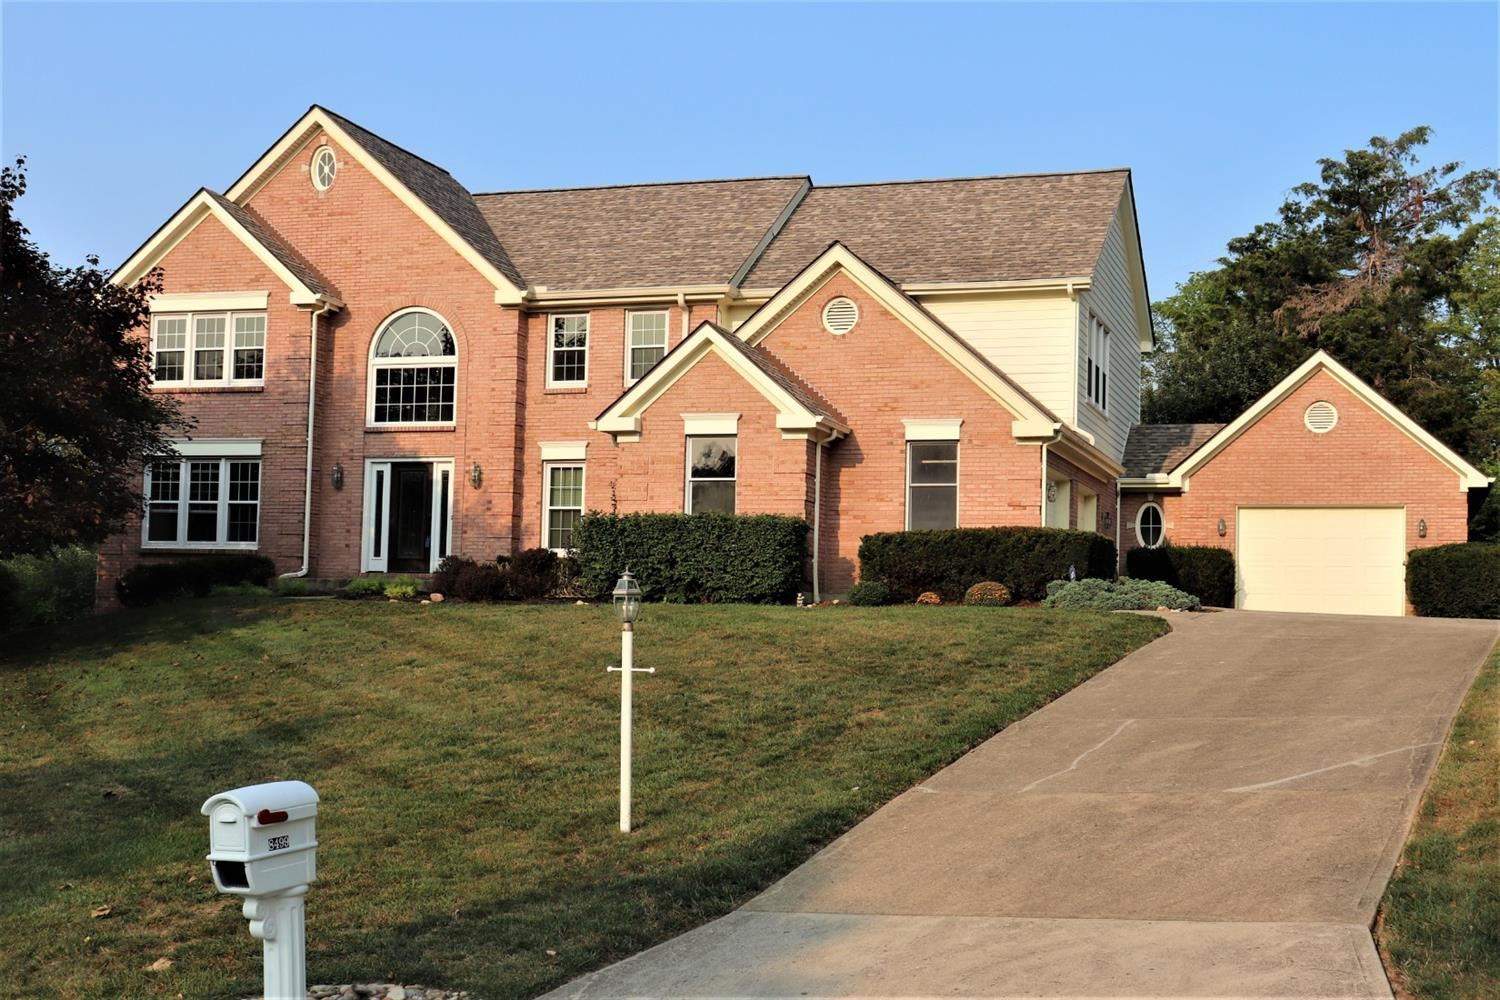 8499 Deer Path, West Chester, OH 45069 - #: 1675640